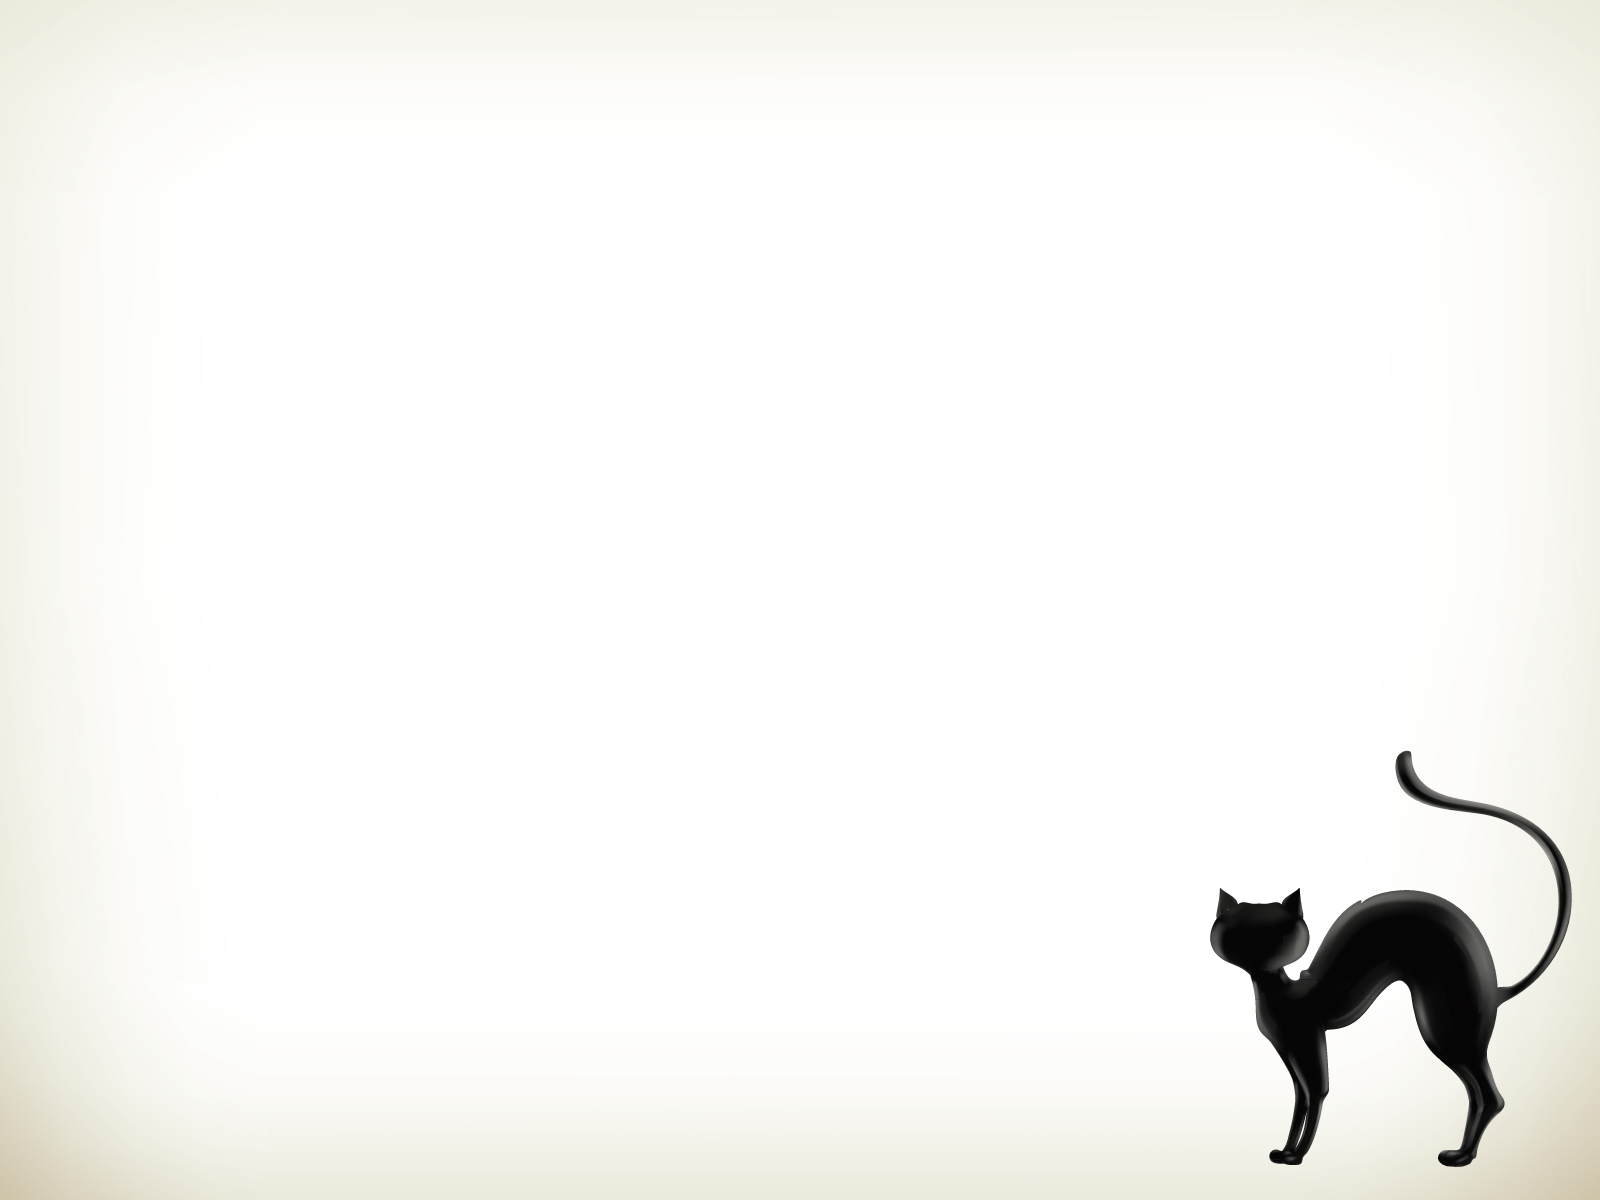 Cats clipart template. Black cat free ppt